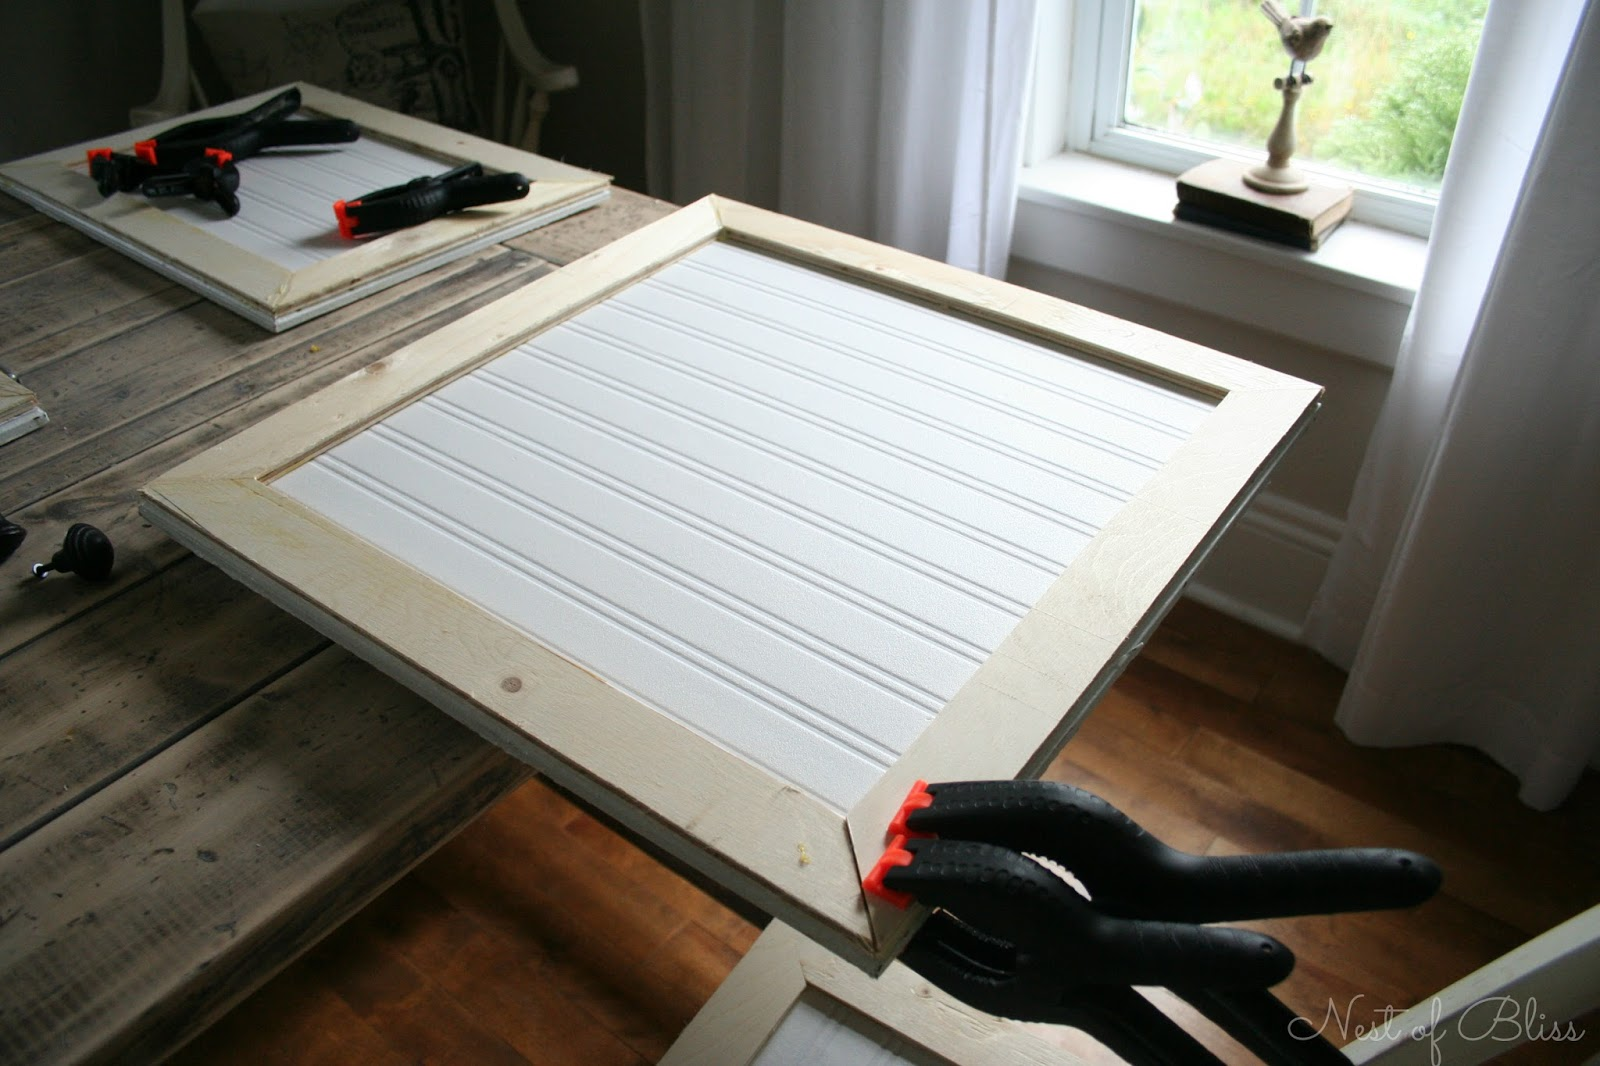 Used Kitchen Cabinet Doors Small Rolling Island Diy Beadboard Wallpaper Cabinets Nest Of Bliss